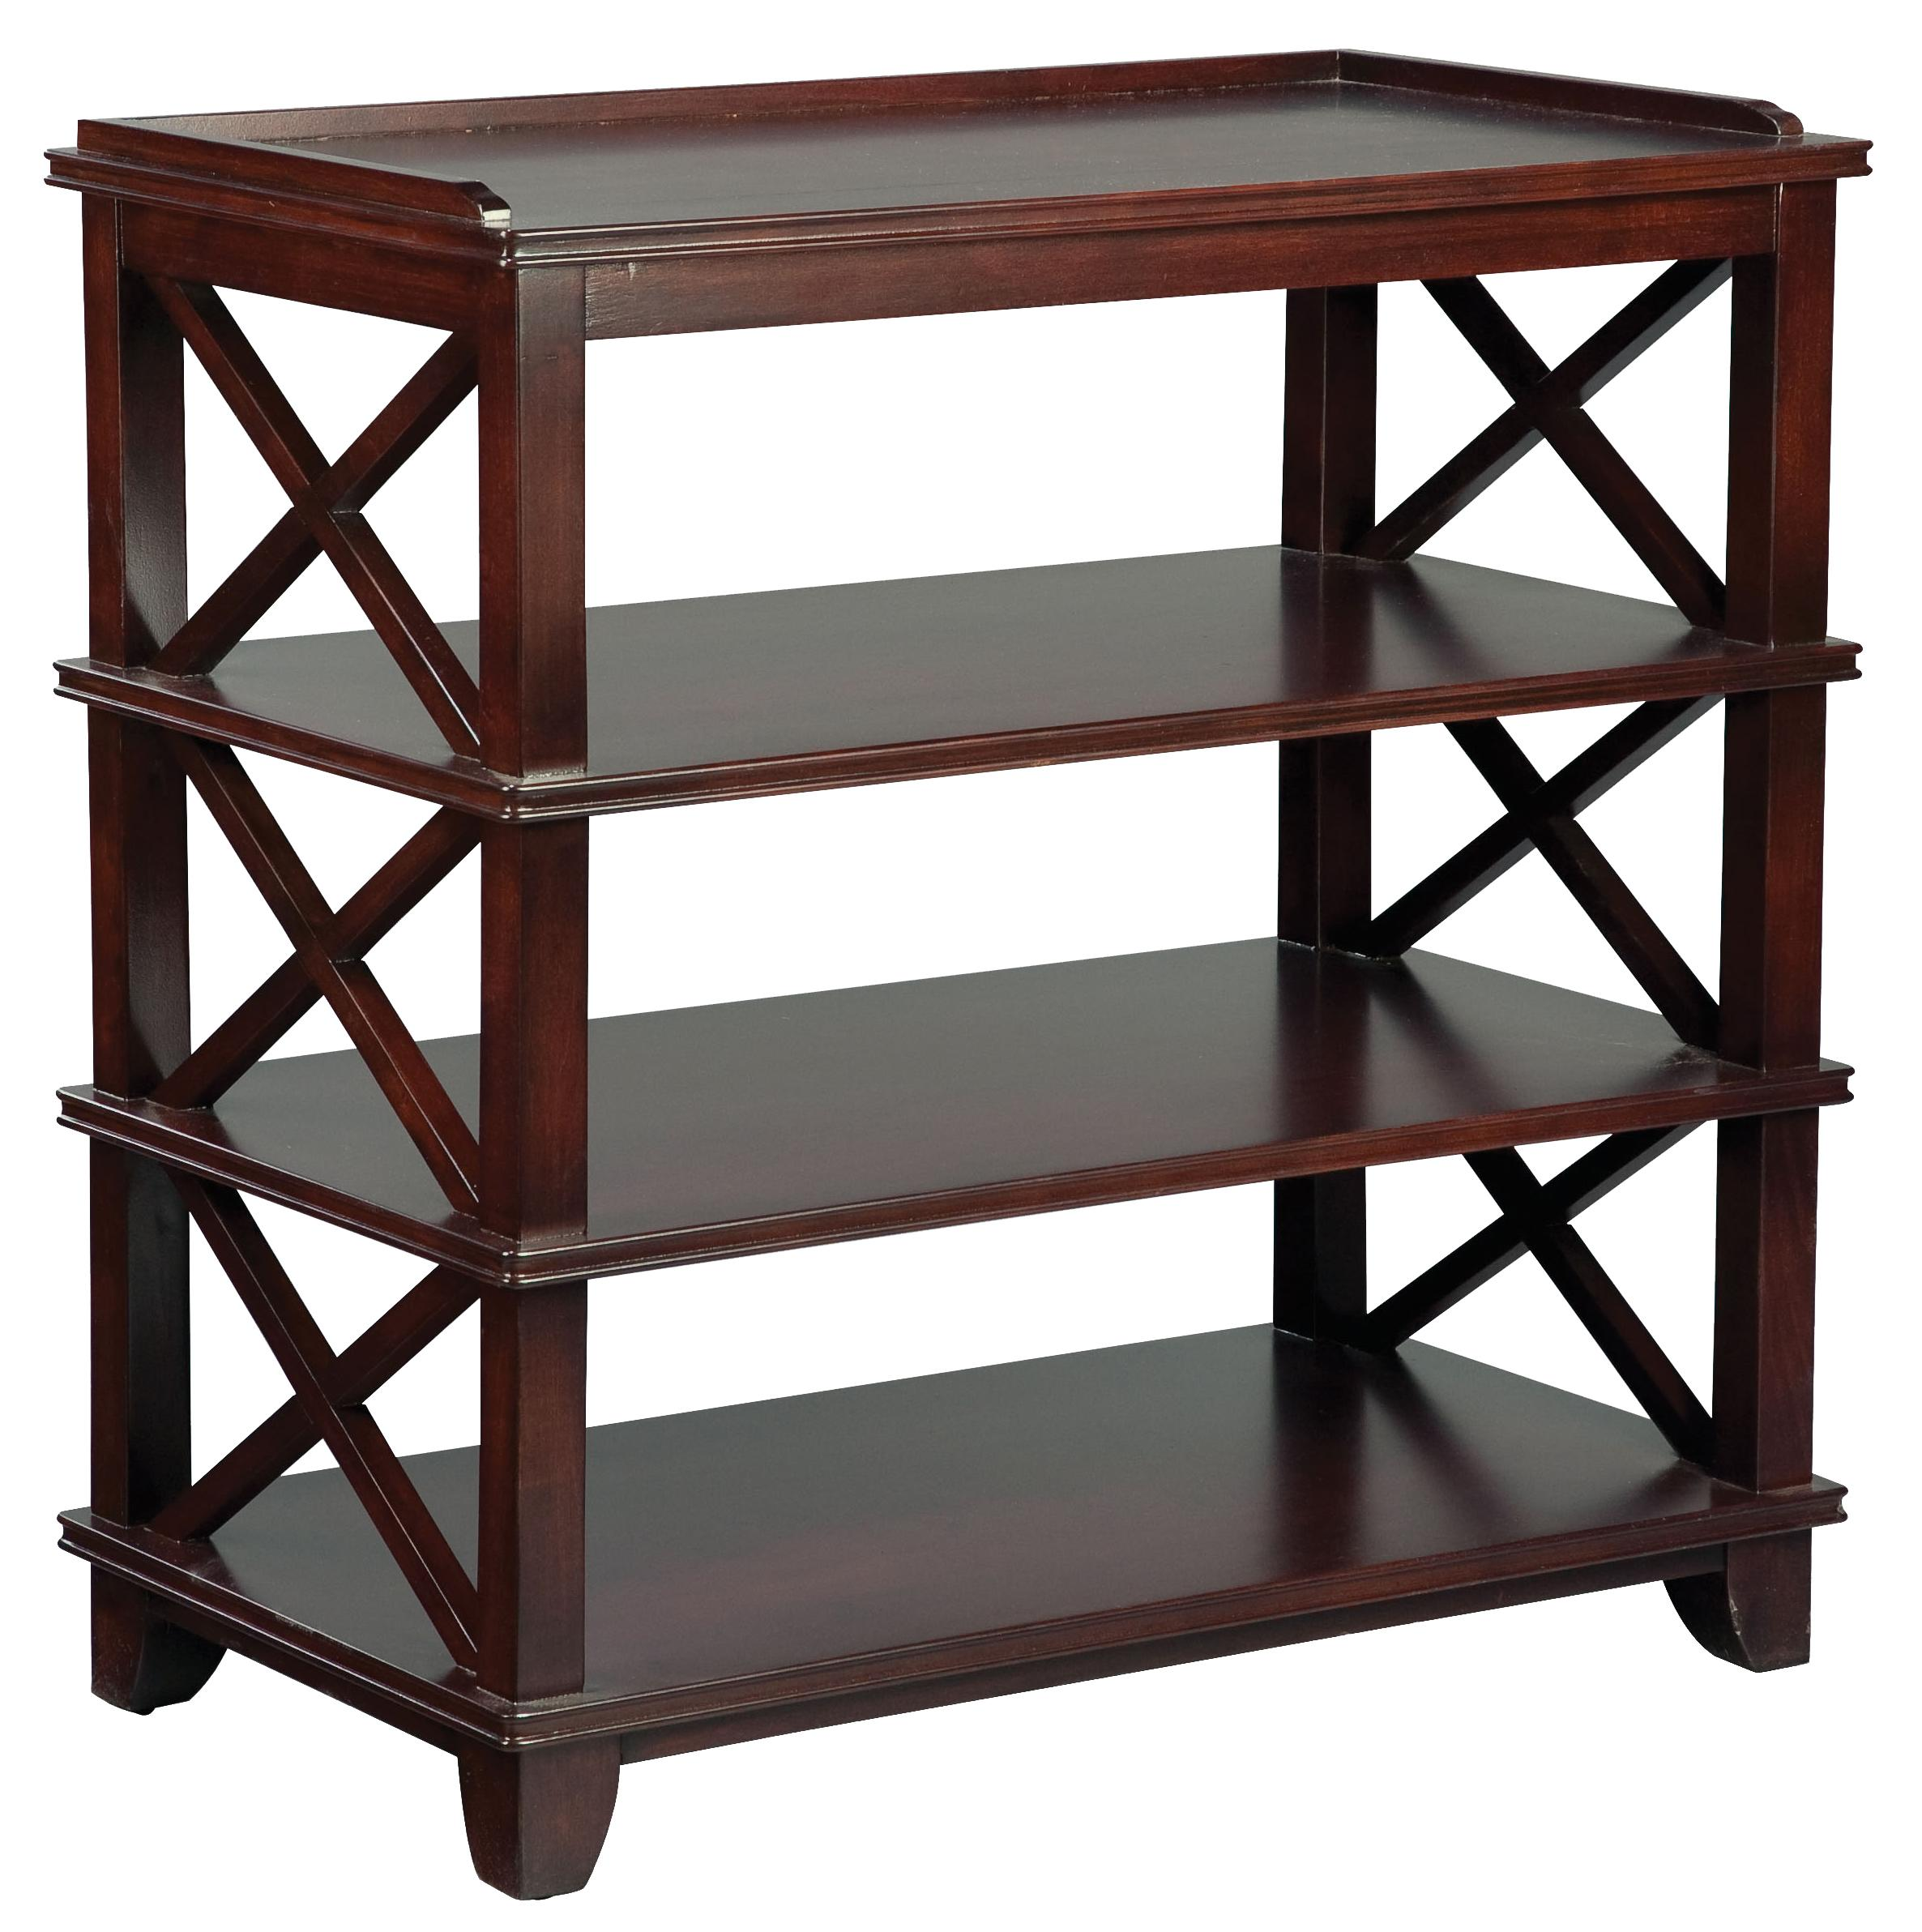 Side Table For Dining Room: Fairfield Tables 8120-96 Casual Dining Room Side Table